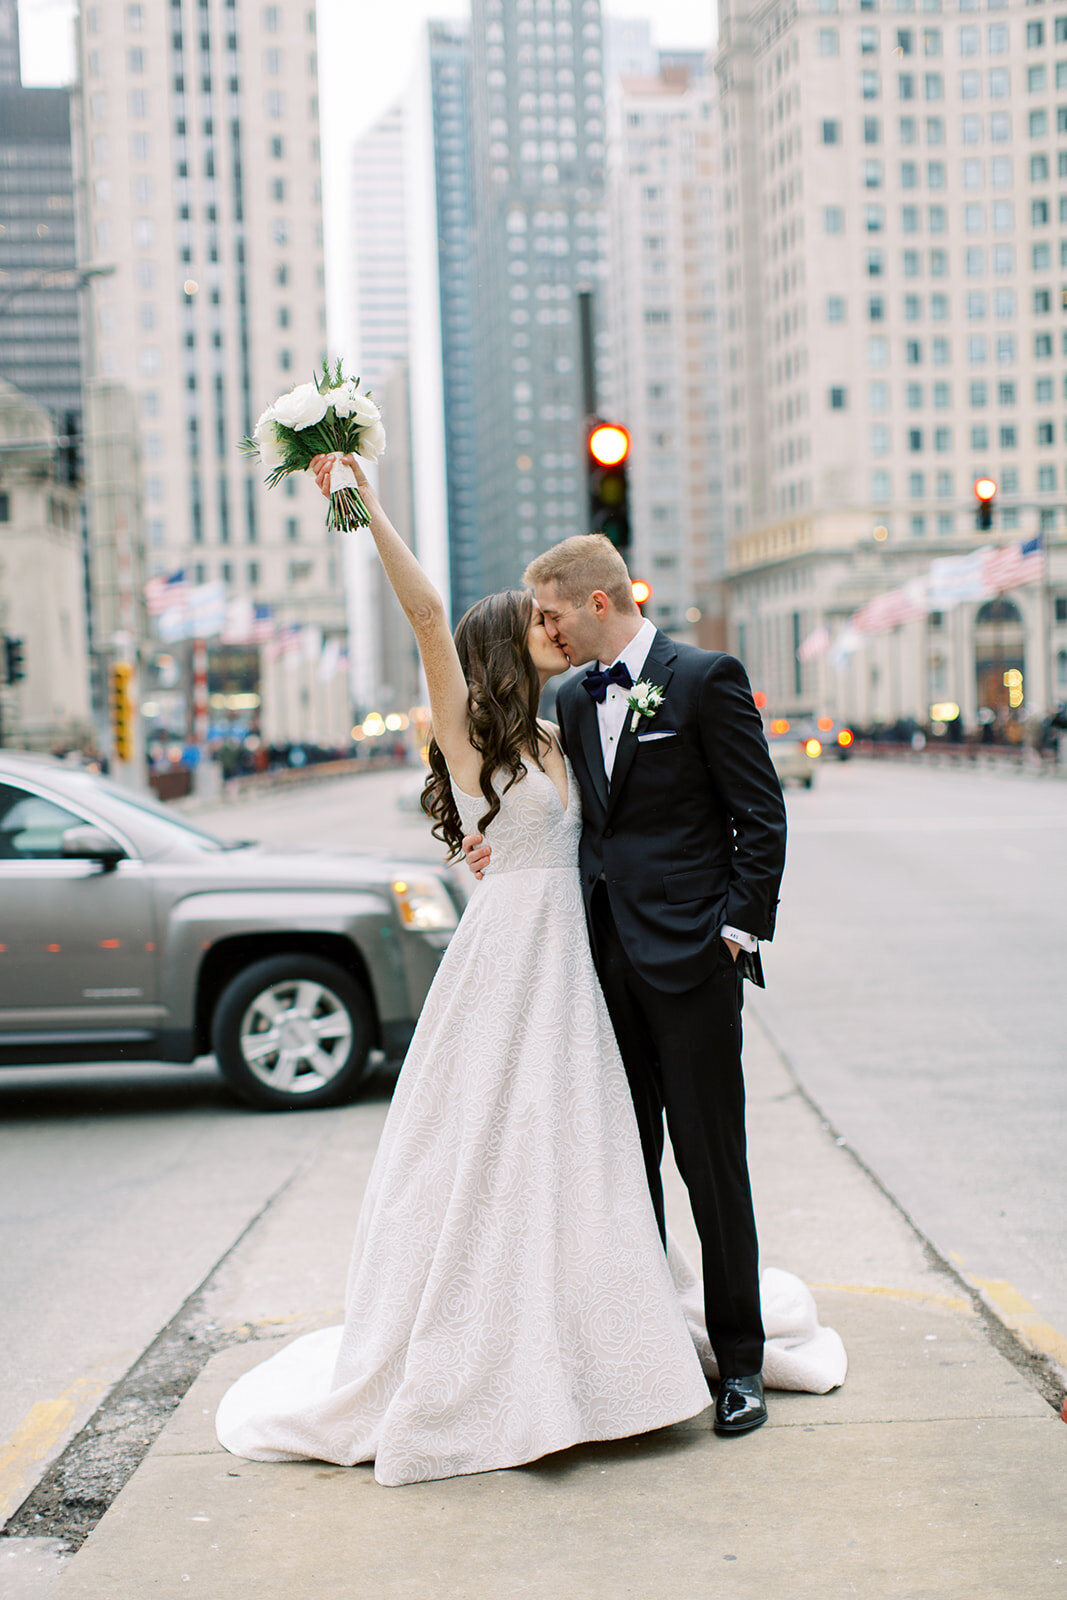 18-Venue-Six10-Wedding-couple-street